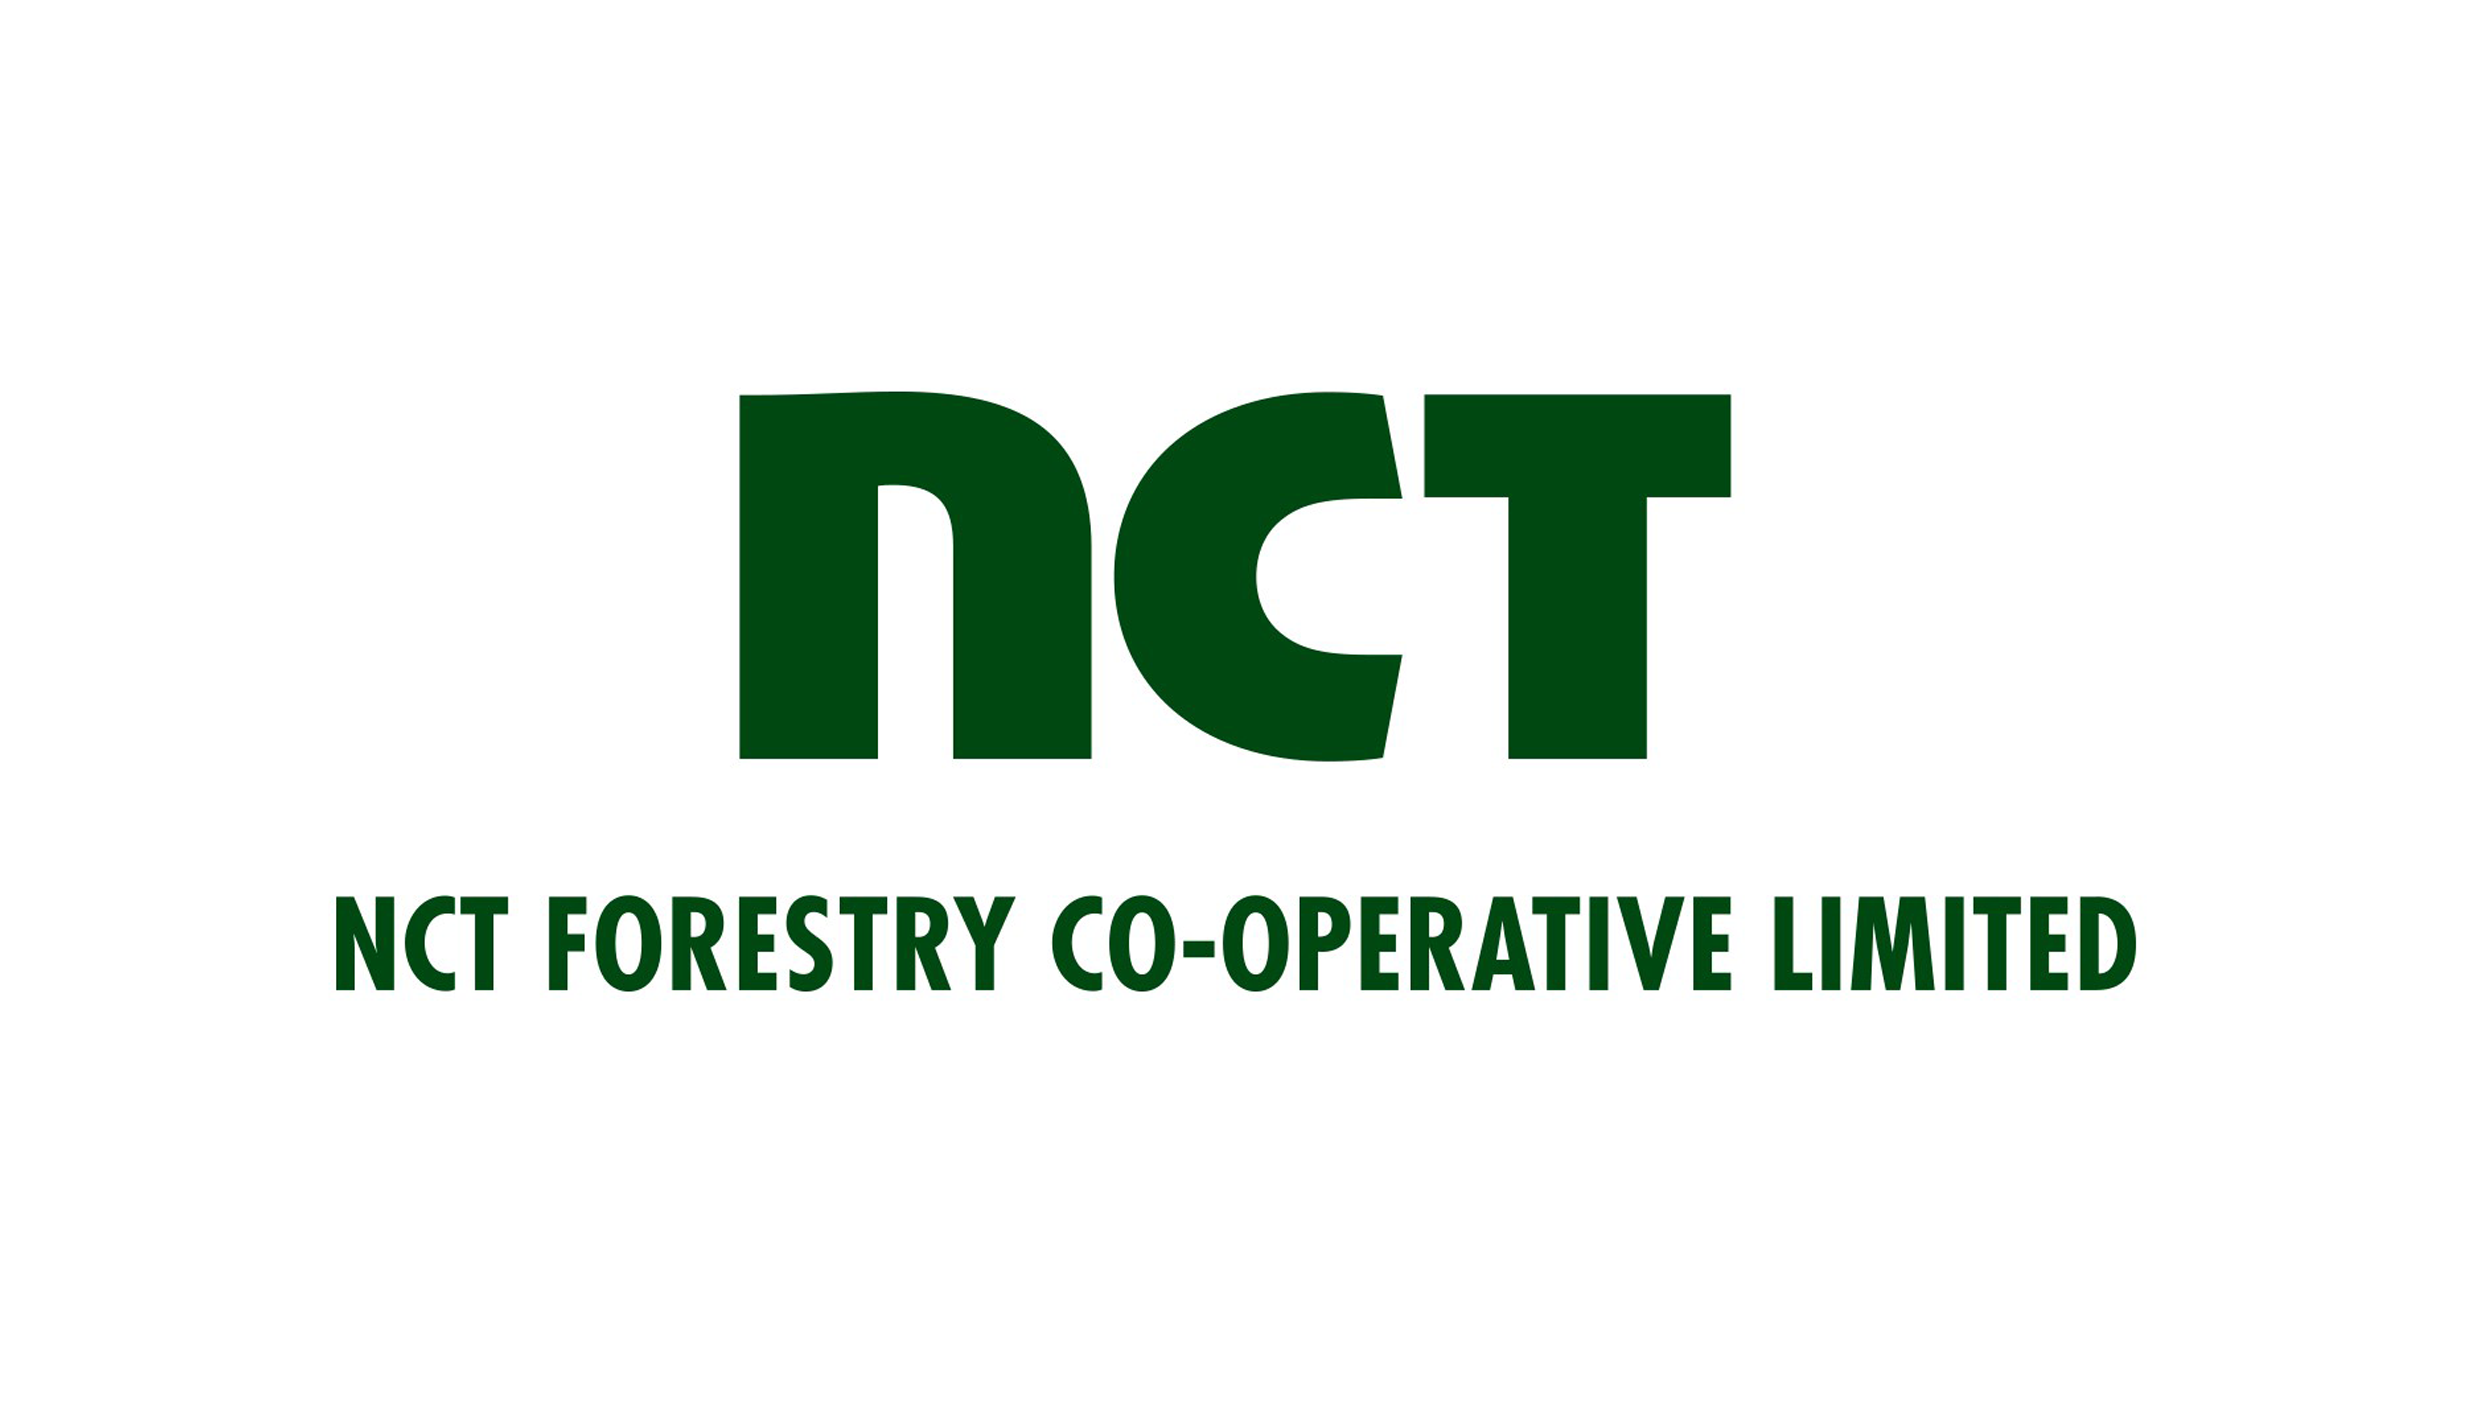 NCT forestry